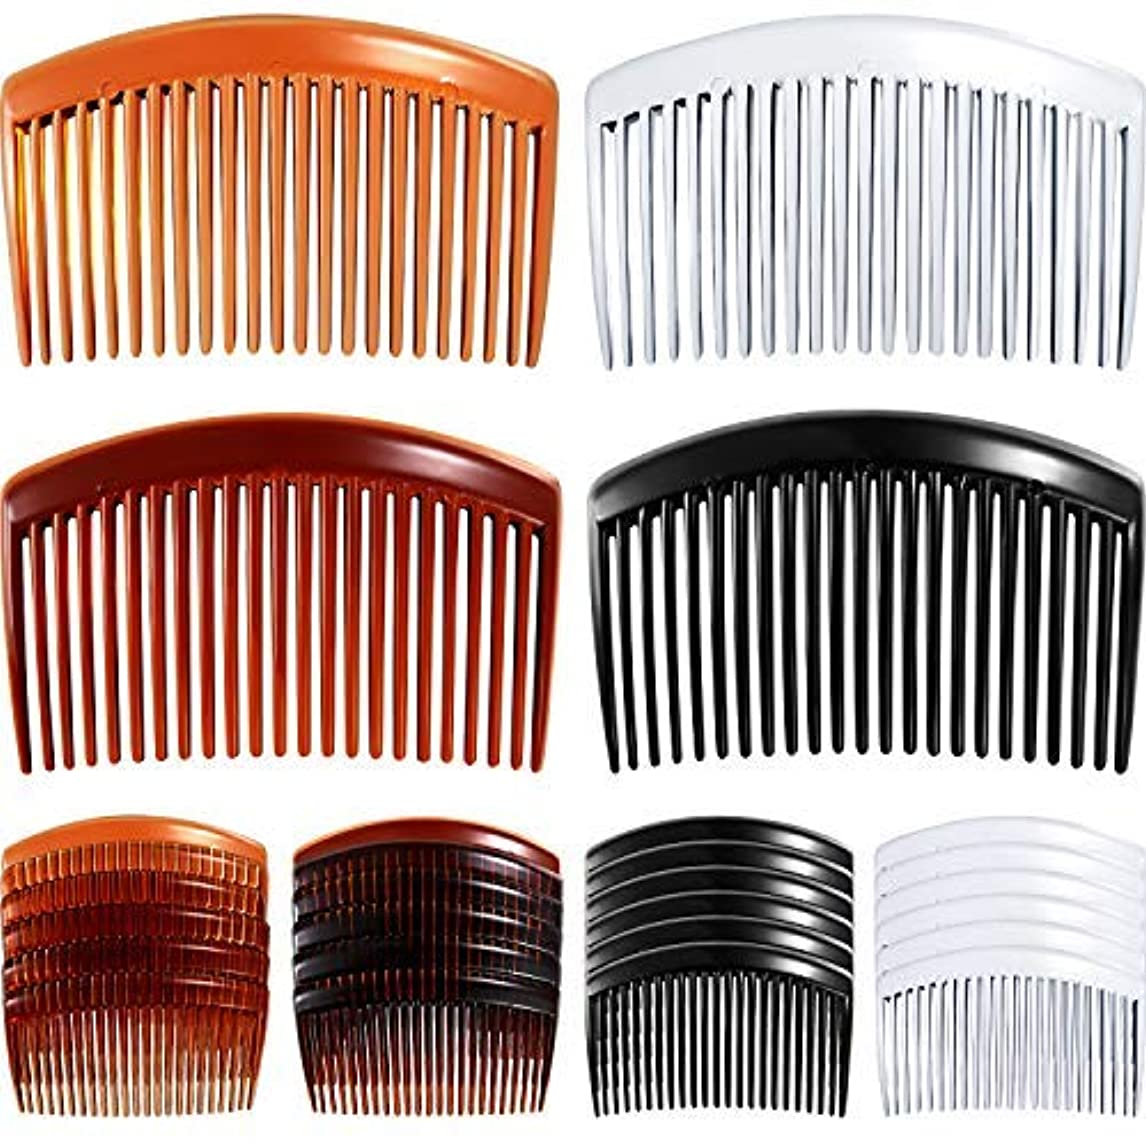 電子審判心理的24 Pieces Hair Comb Plastic Hair Side Combs Straight Teeth Hair Clip Comb Bridal Wedding Veil Comb for Fine Hair...